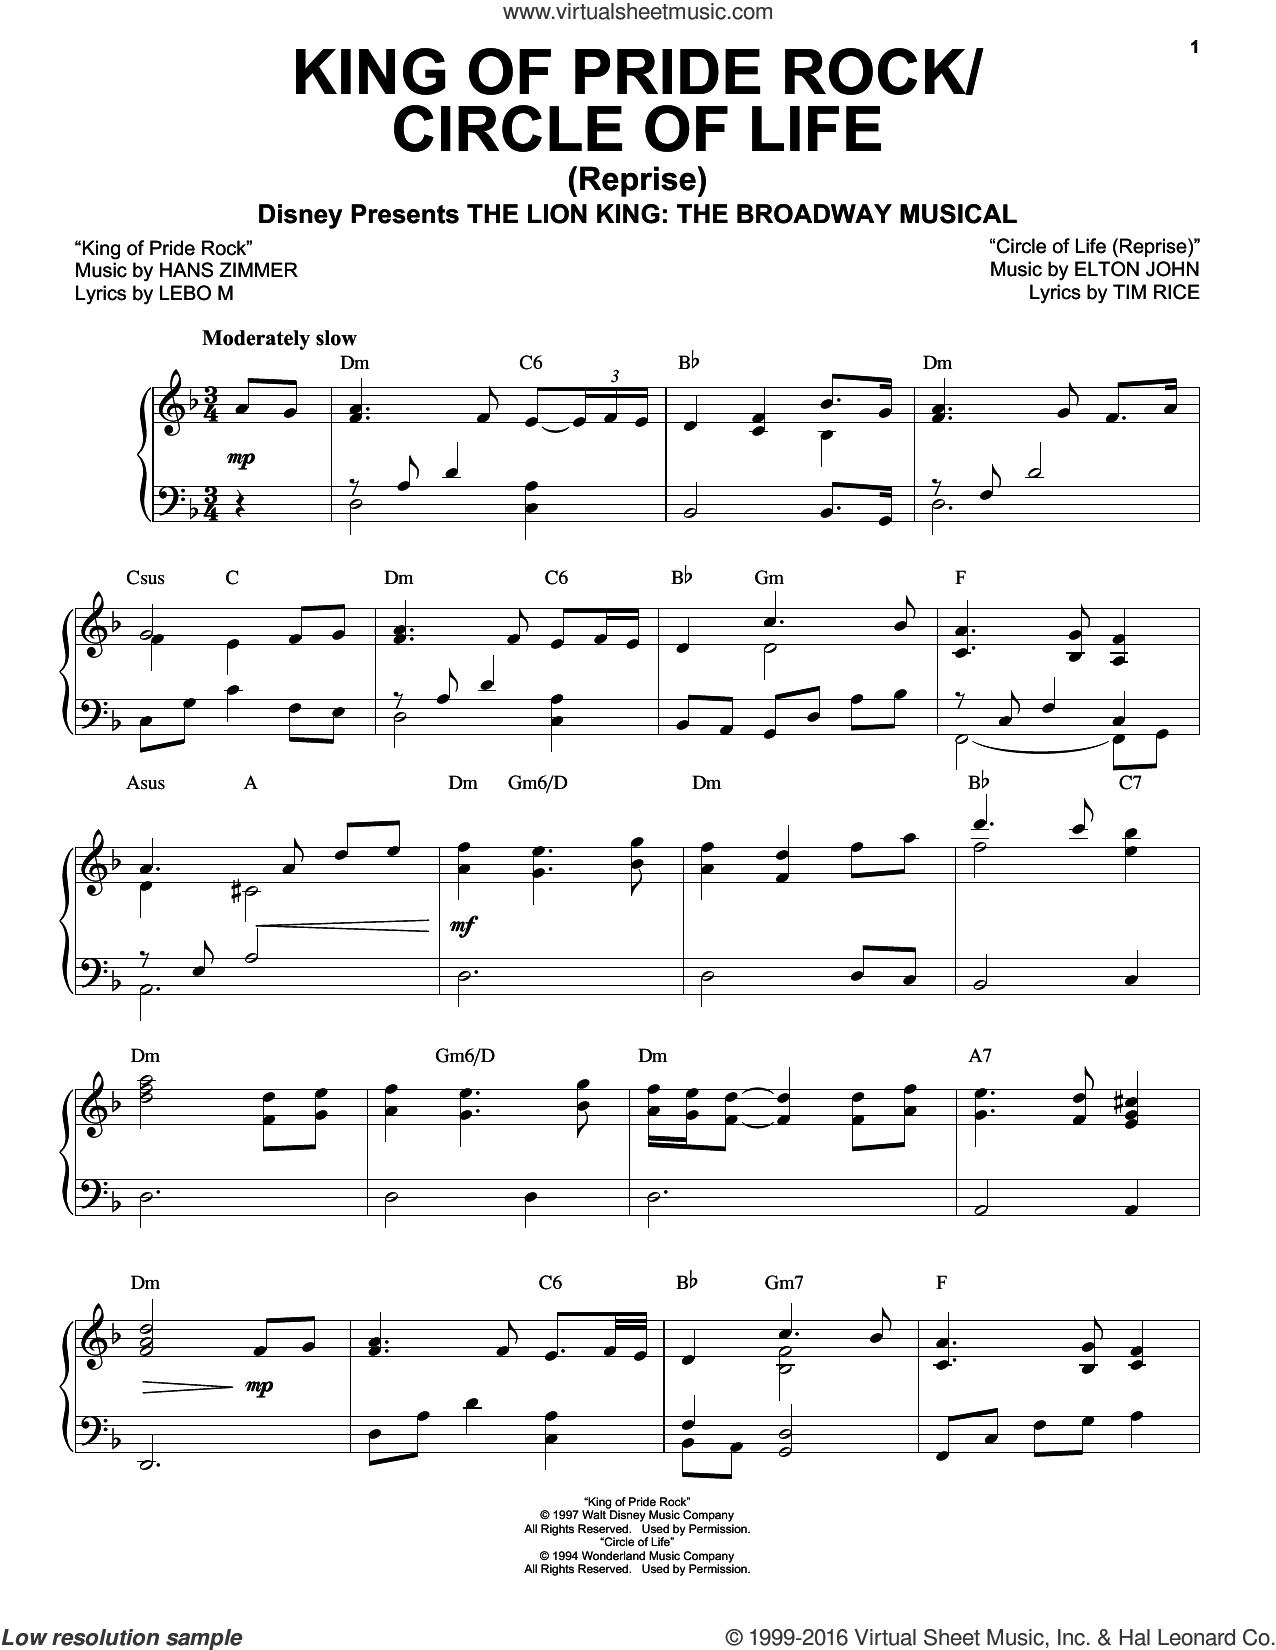 King Of Pride Rock (from The Lion King: Broadway Musical) sheet music for voice, piano or guitar by Elton John, Tim Rice, Hans Zimmer and Lebo M., intermediate skill level